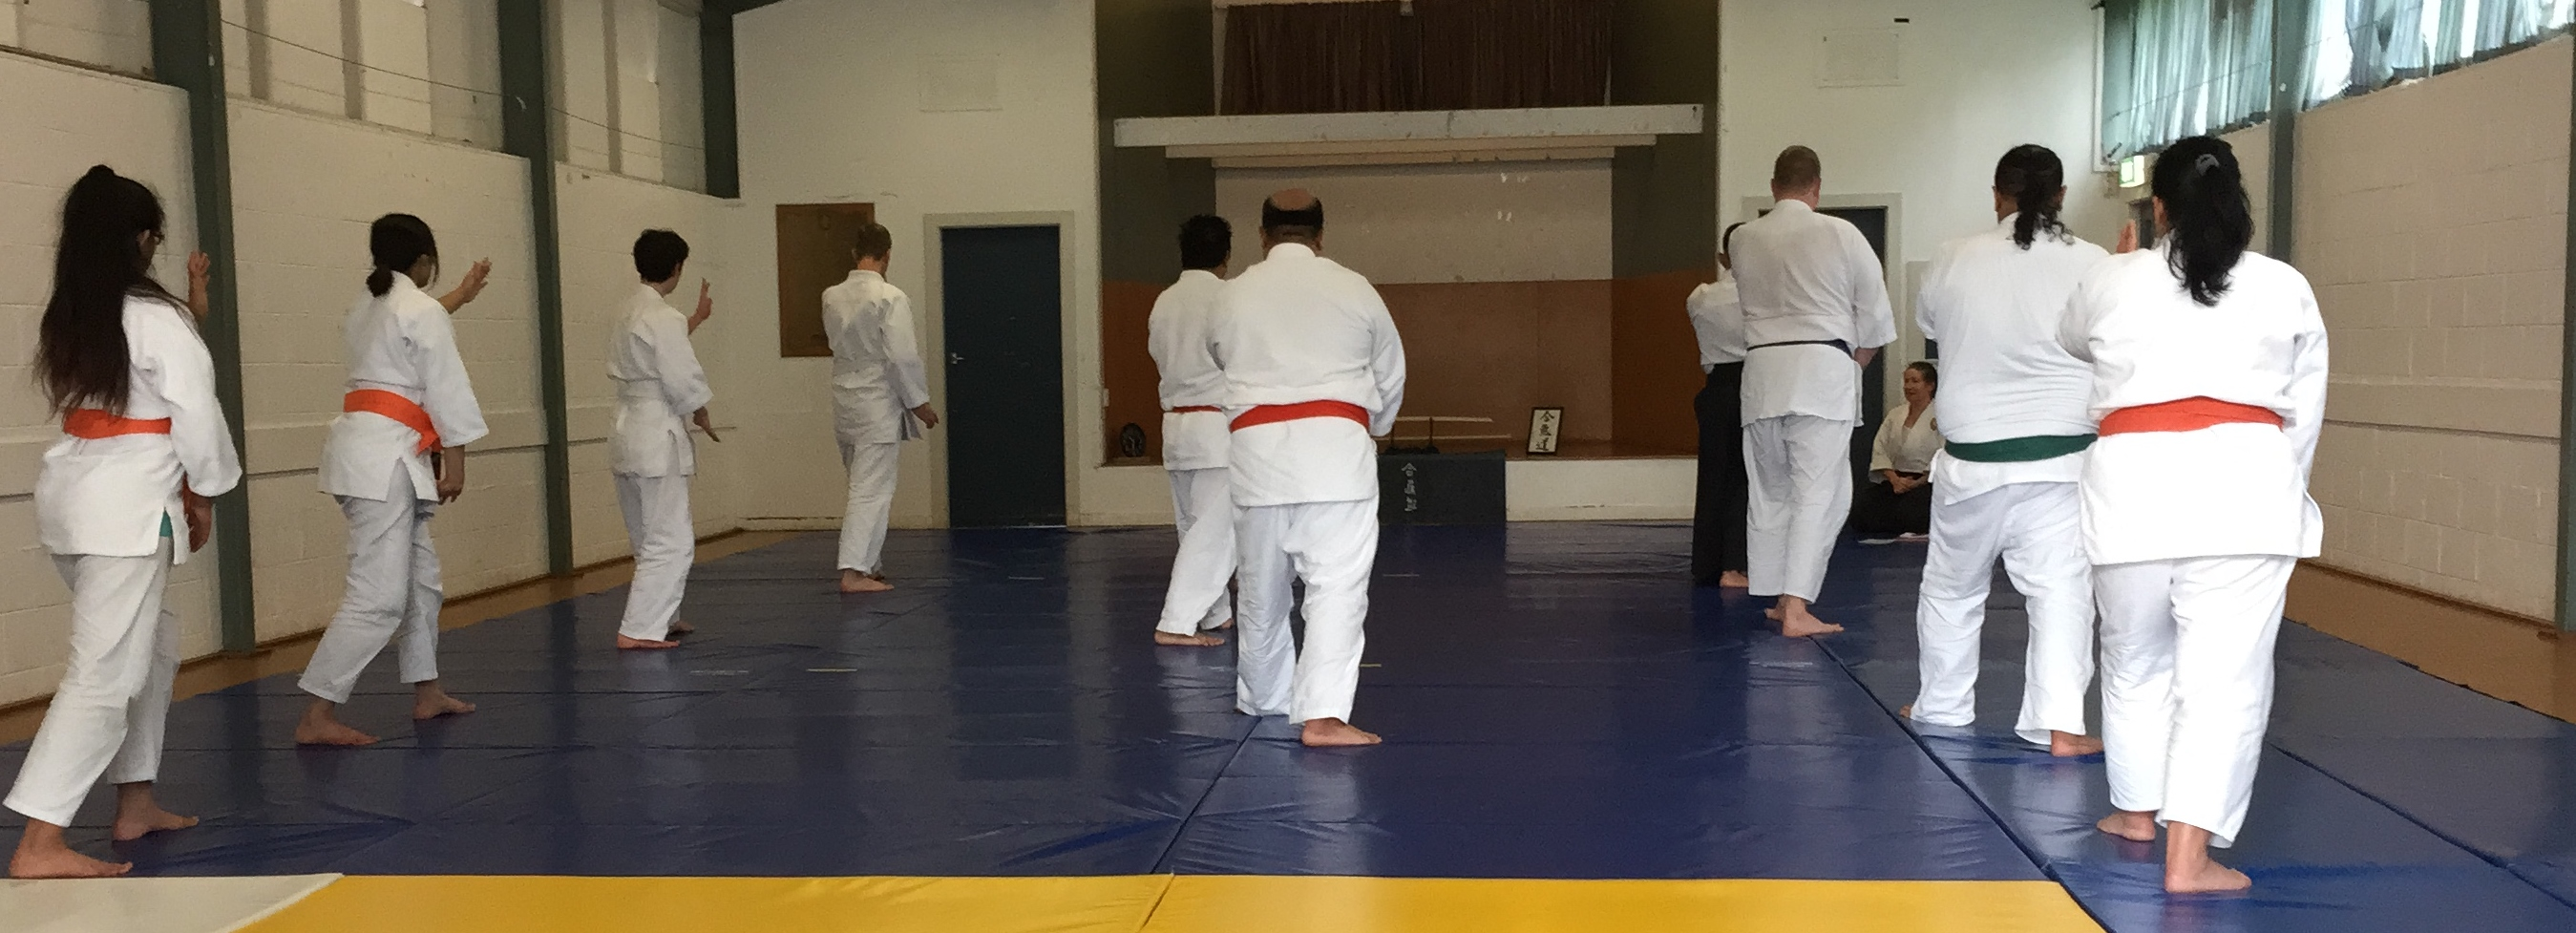 Aikido at Belmont Dojo